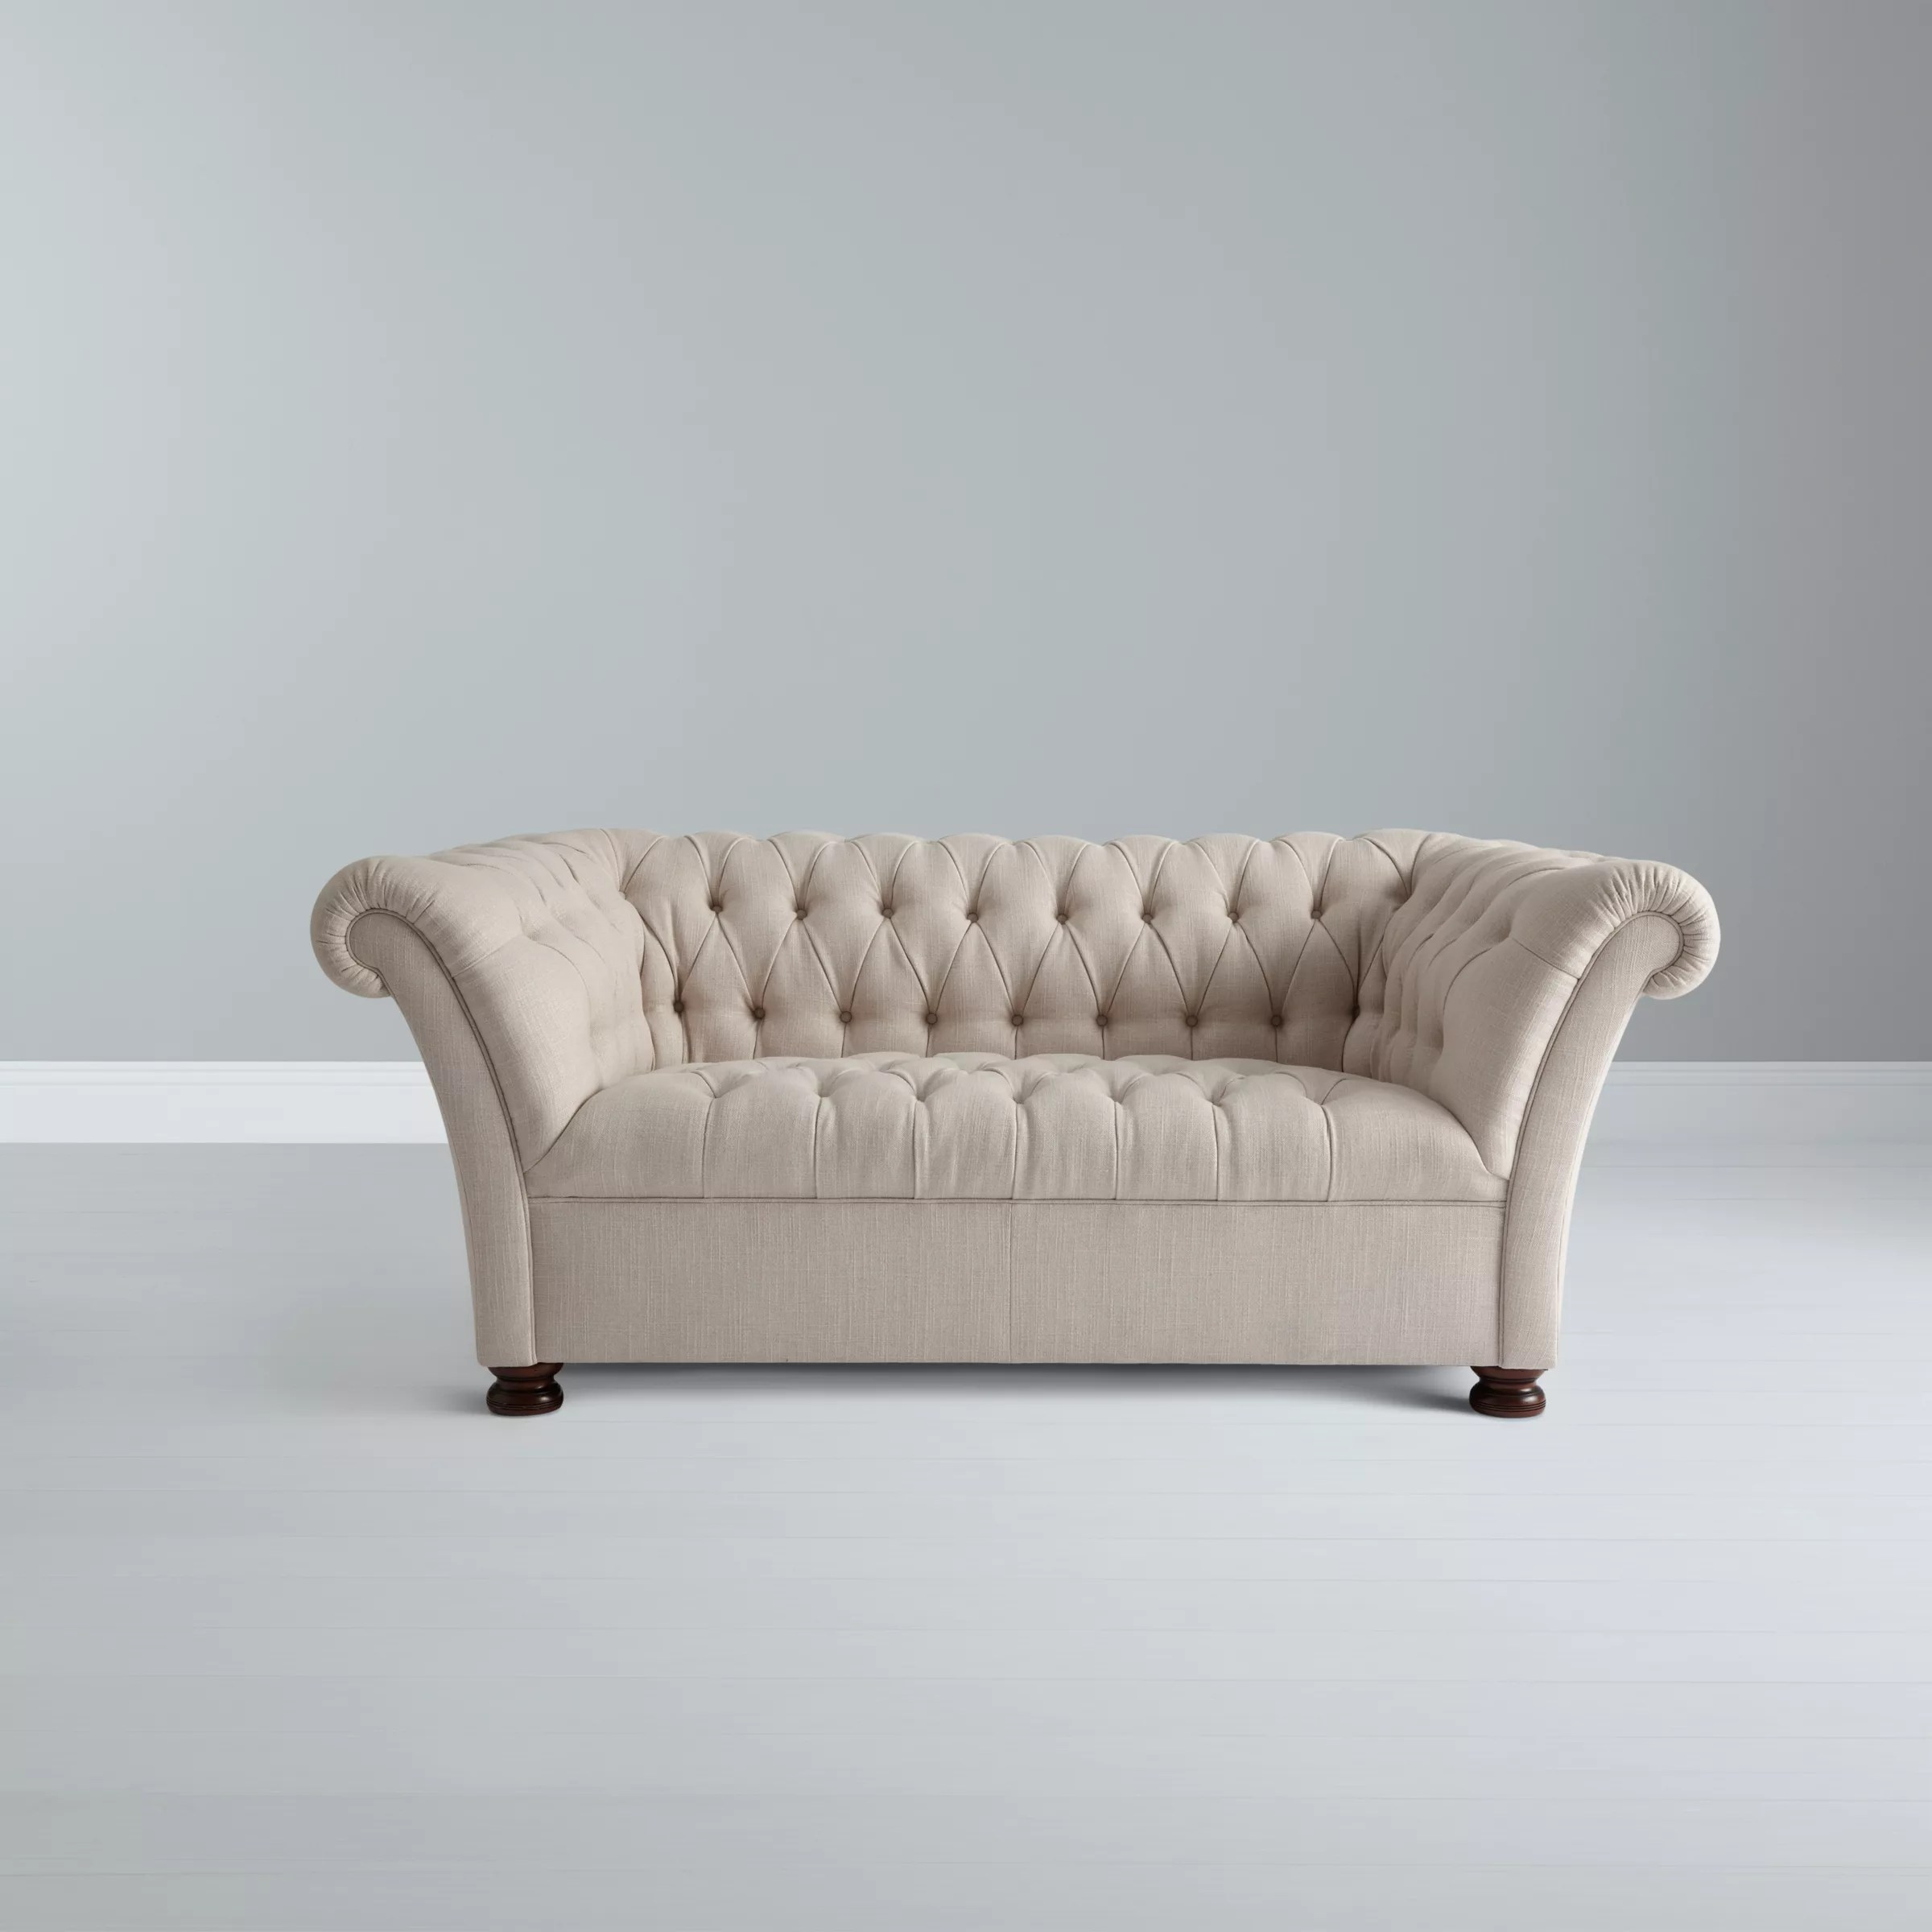 Chesterfield Sofa Online Uk John Lewis Cambridge Large Chesterfield Sofa Linen At John Lewis